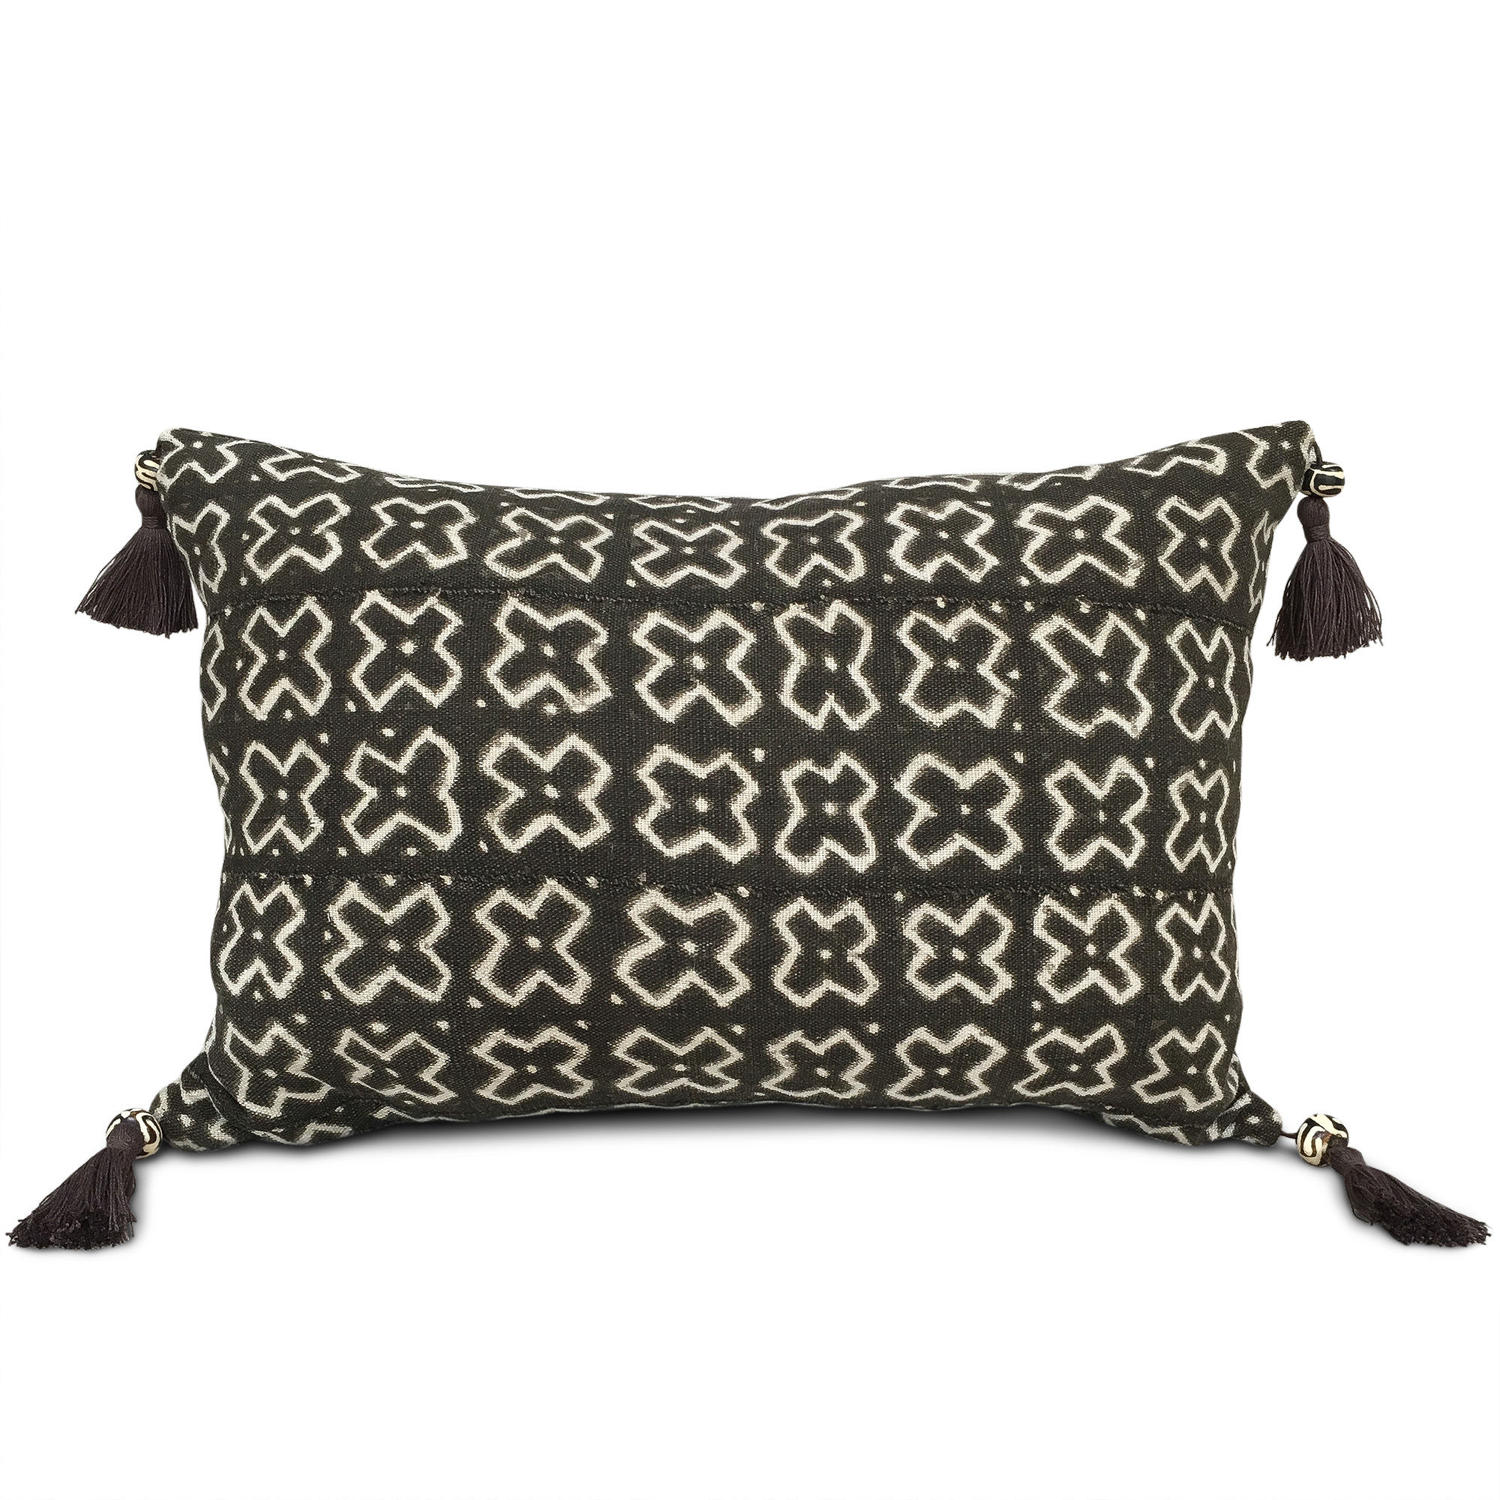 Mud Cloth Cushions with Tassels